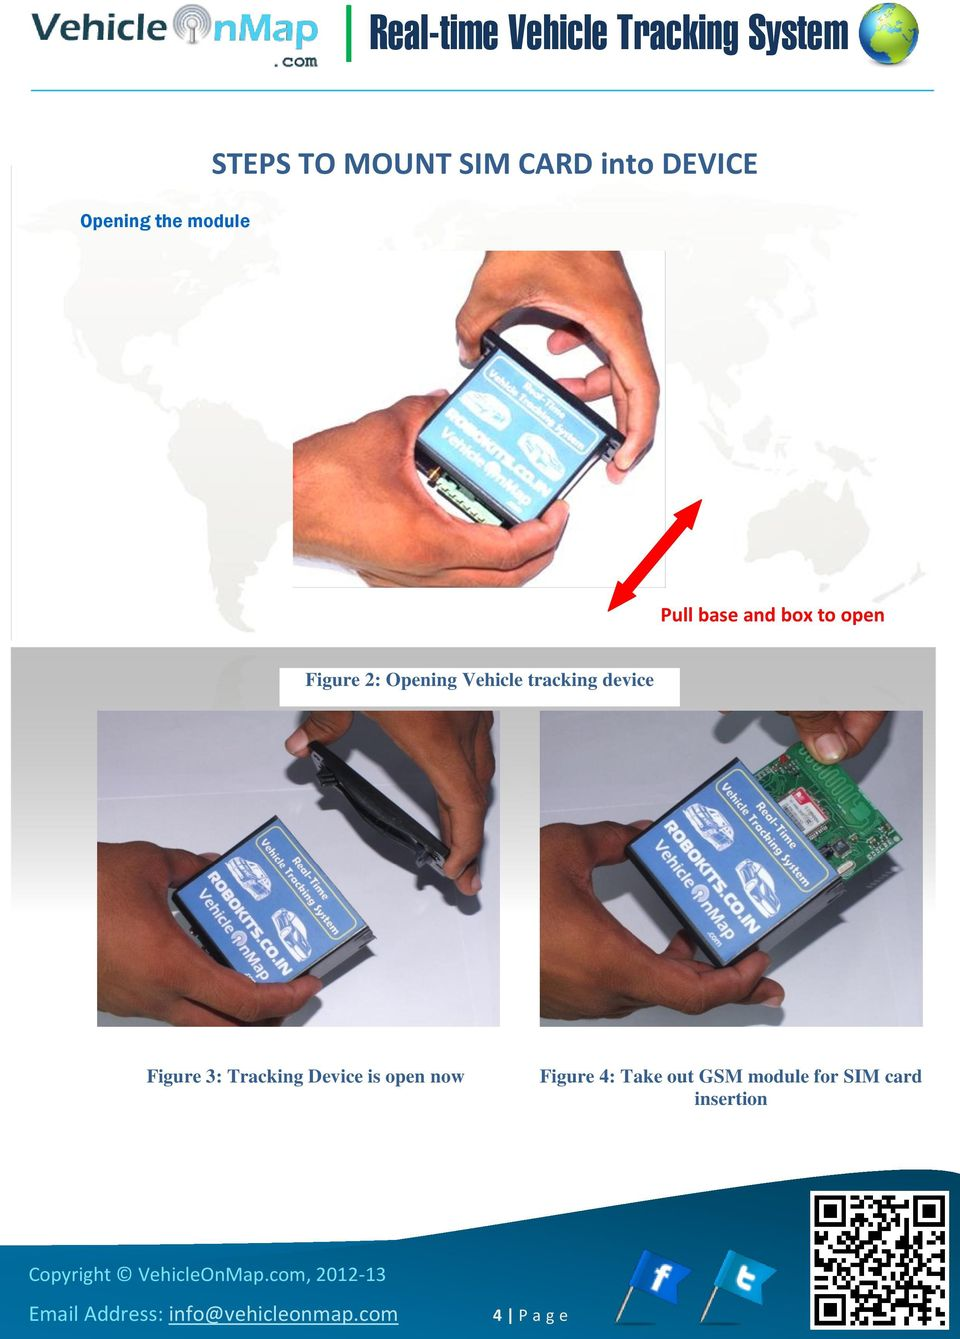 tracking device Figure 3: Tracking Device is open now